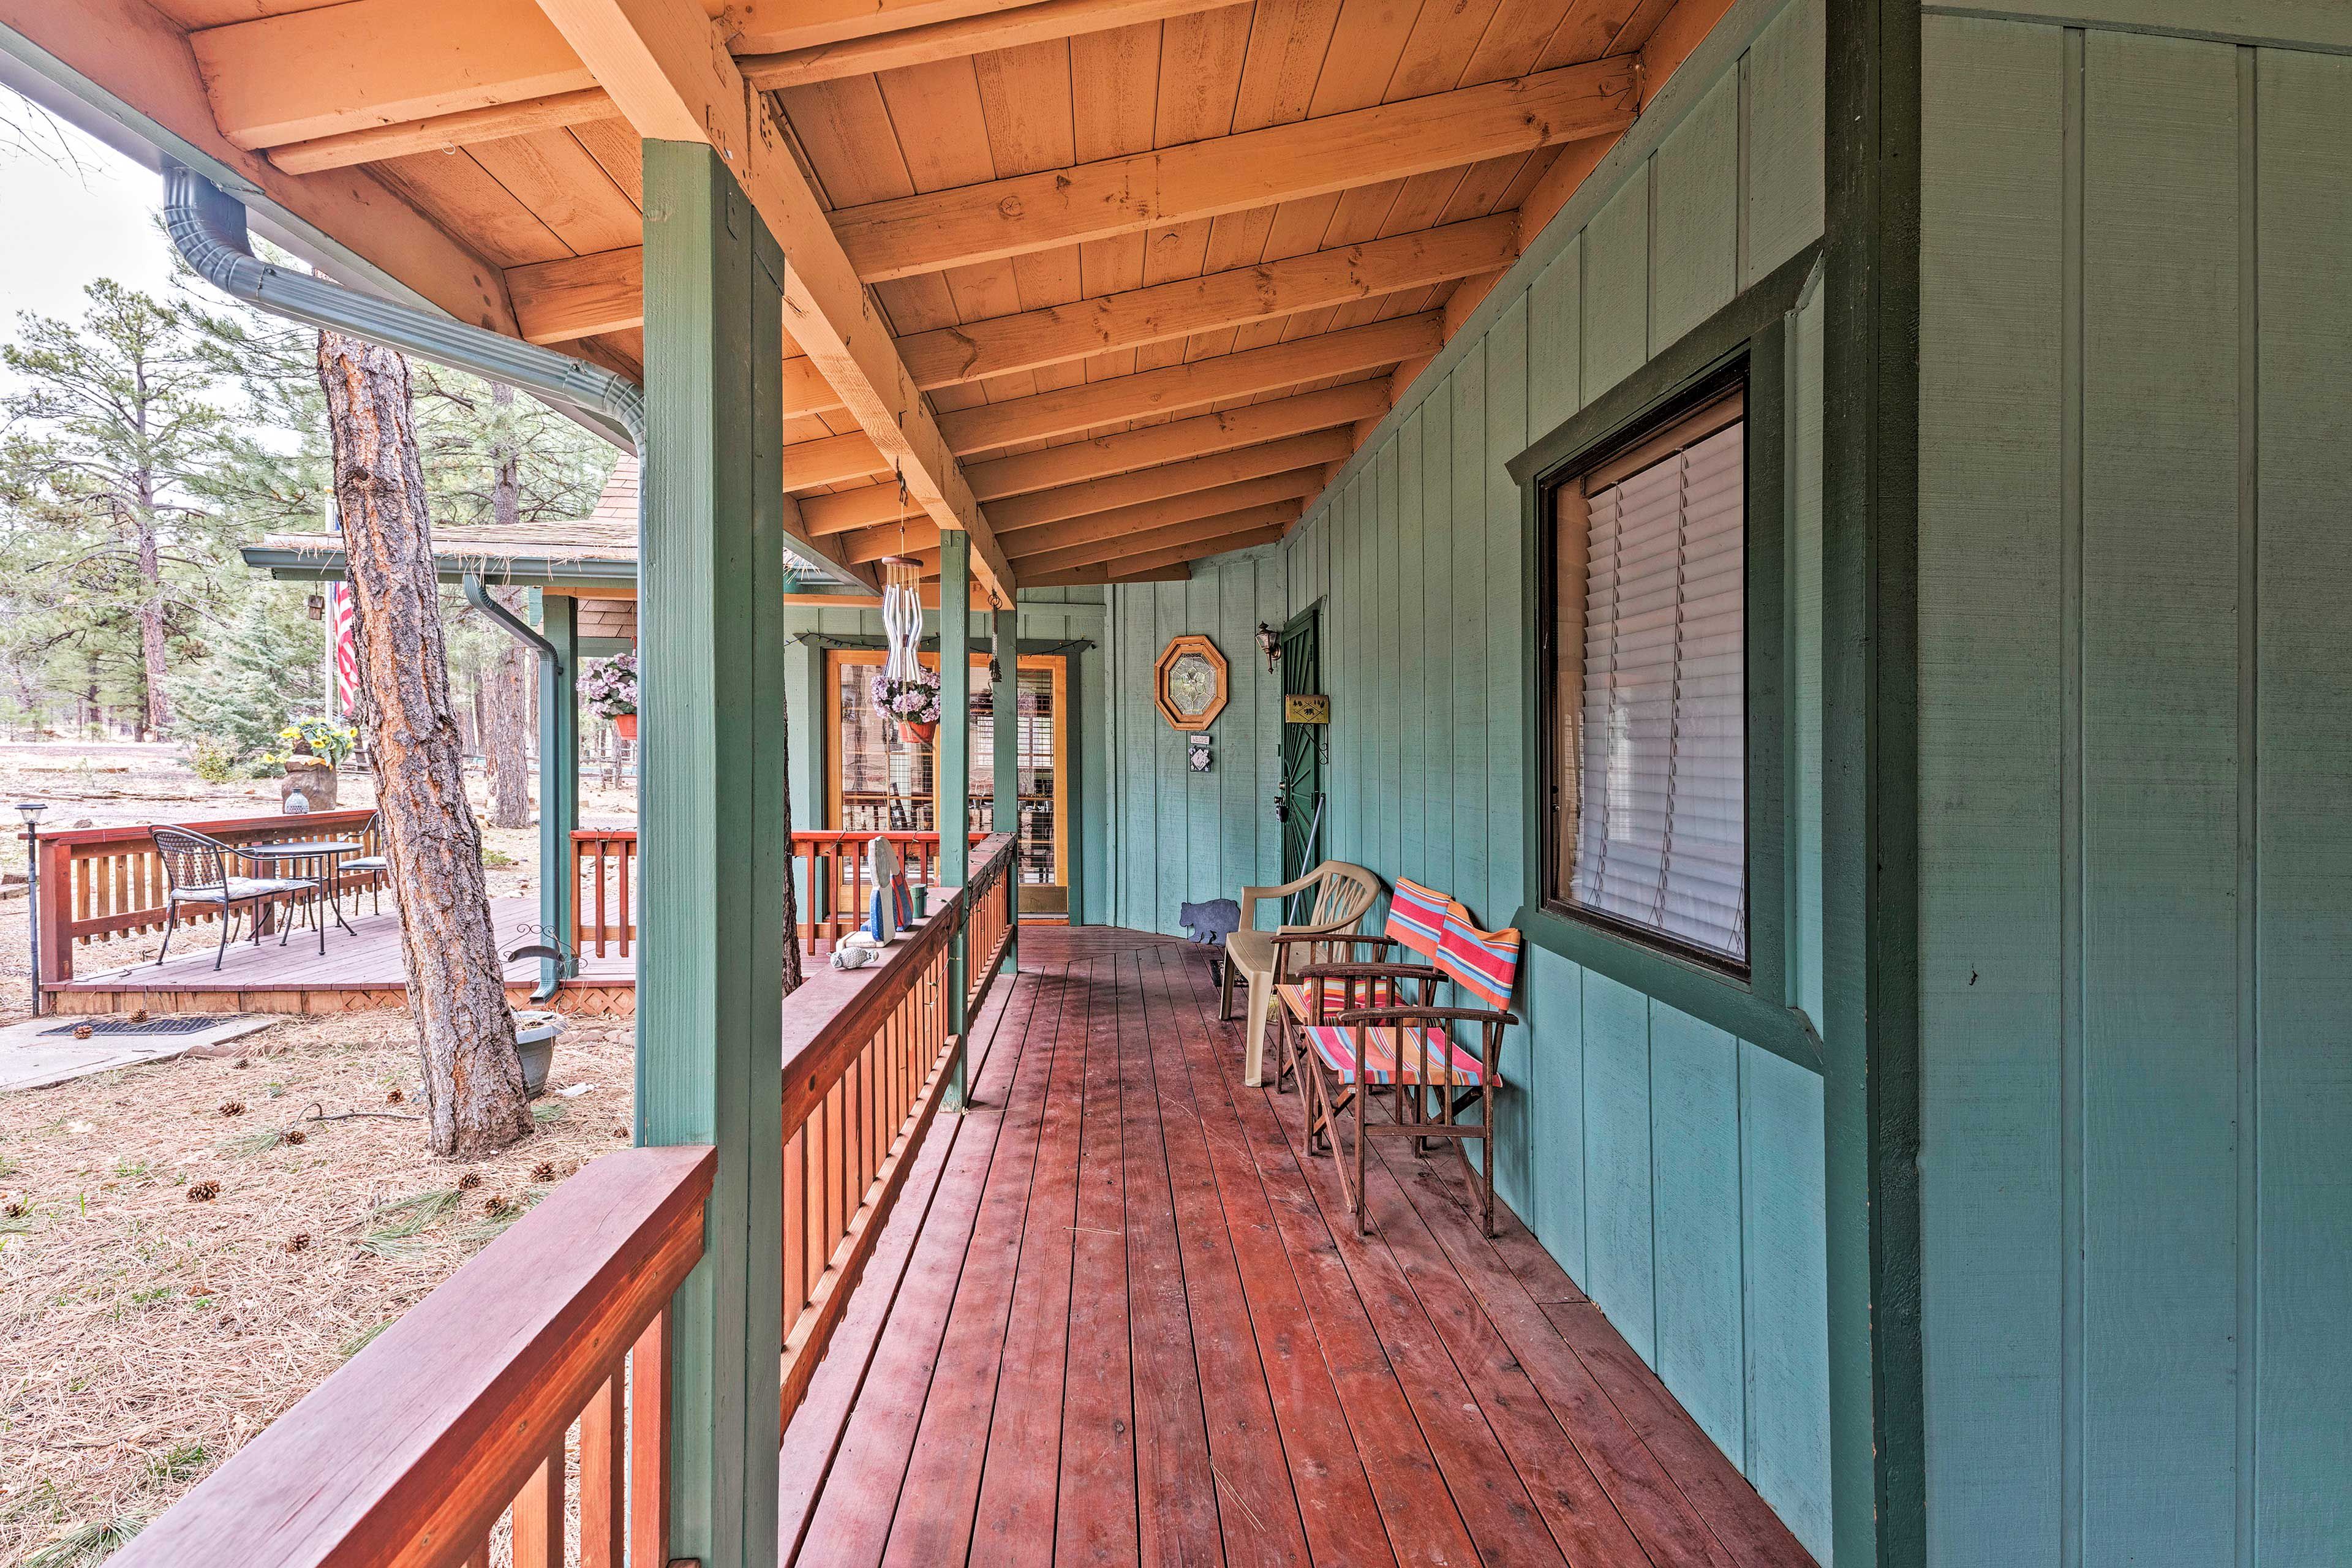 You'll find a large wraparound deck outside with plenty of space to barbecue.